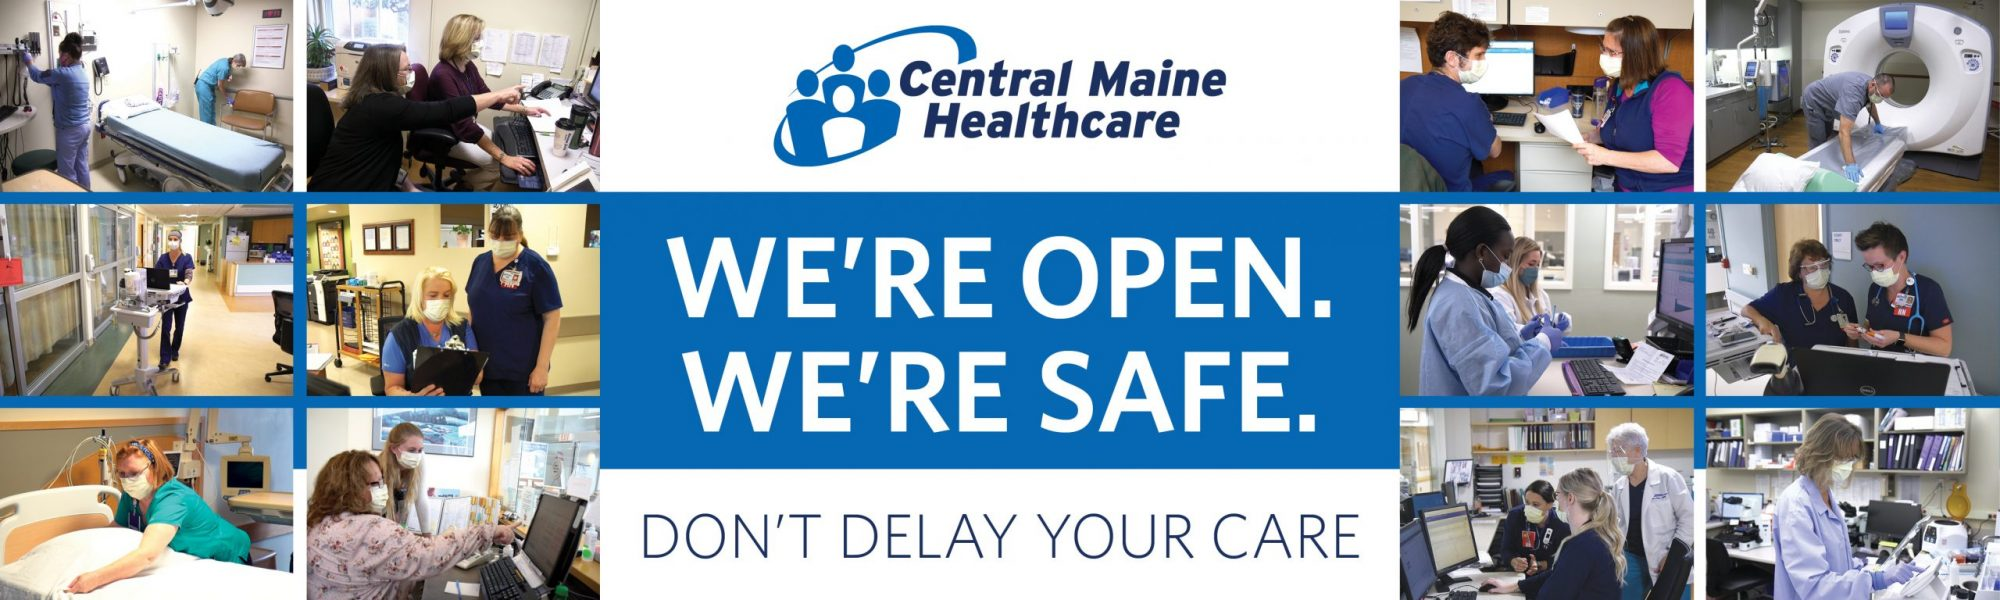 We're Open. We're Safe. Don't Delay Your Care.